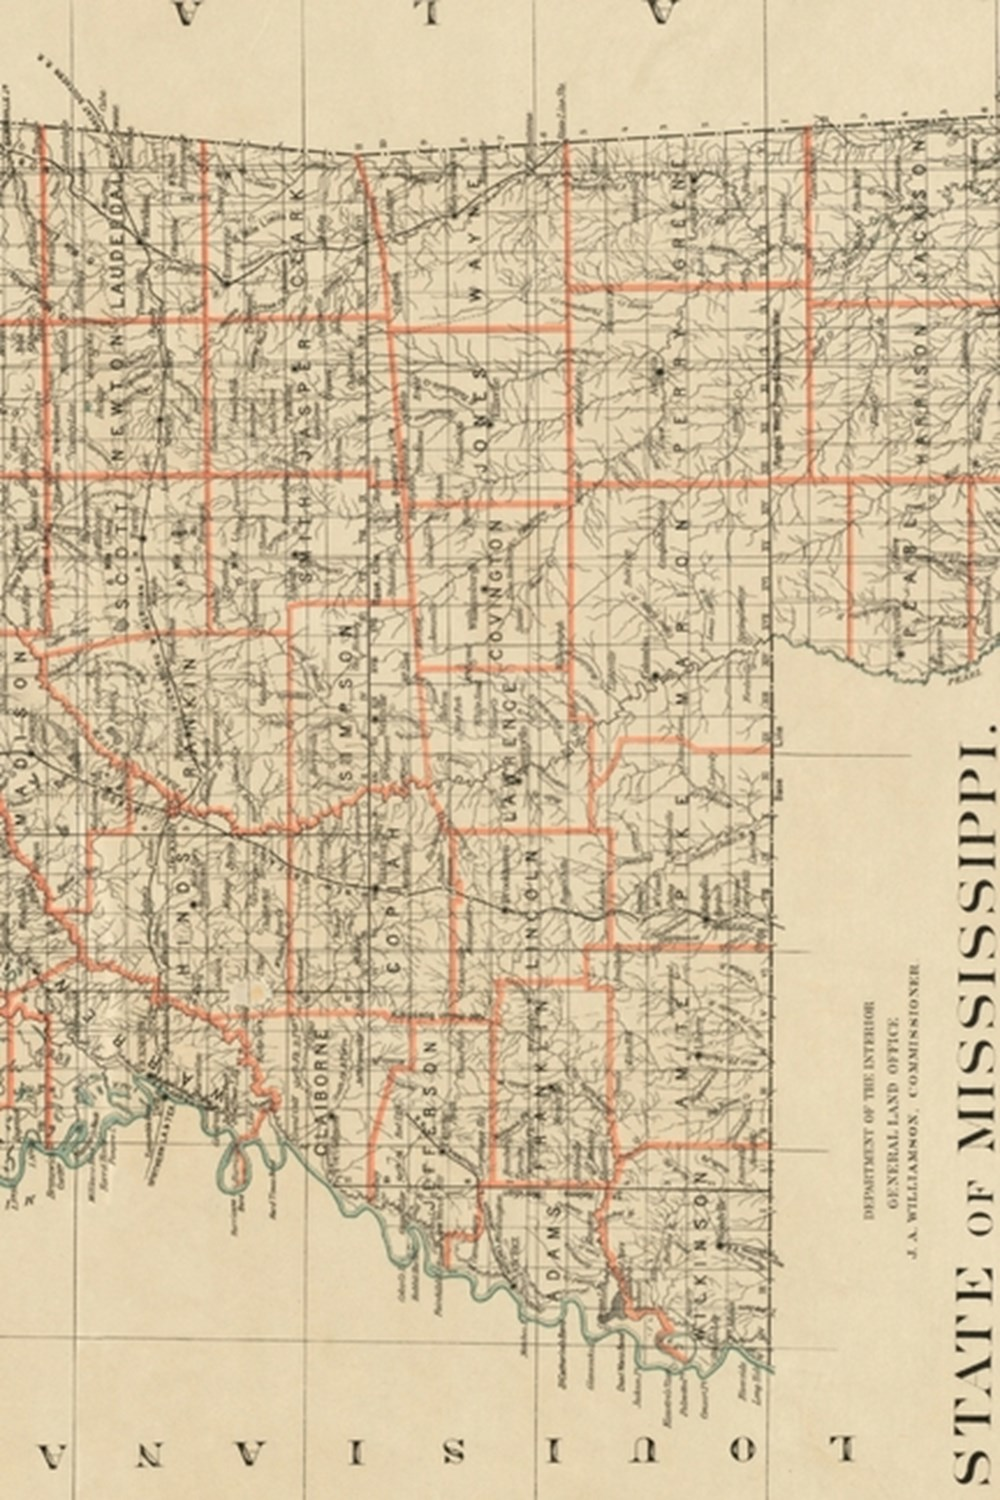 1878 Map of the State of Mississippi - A Poetose Notebook / Journal / Diary (50 pages/25 sheets)